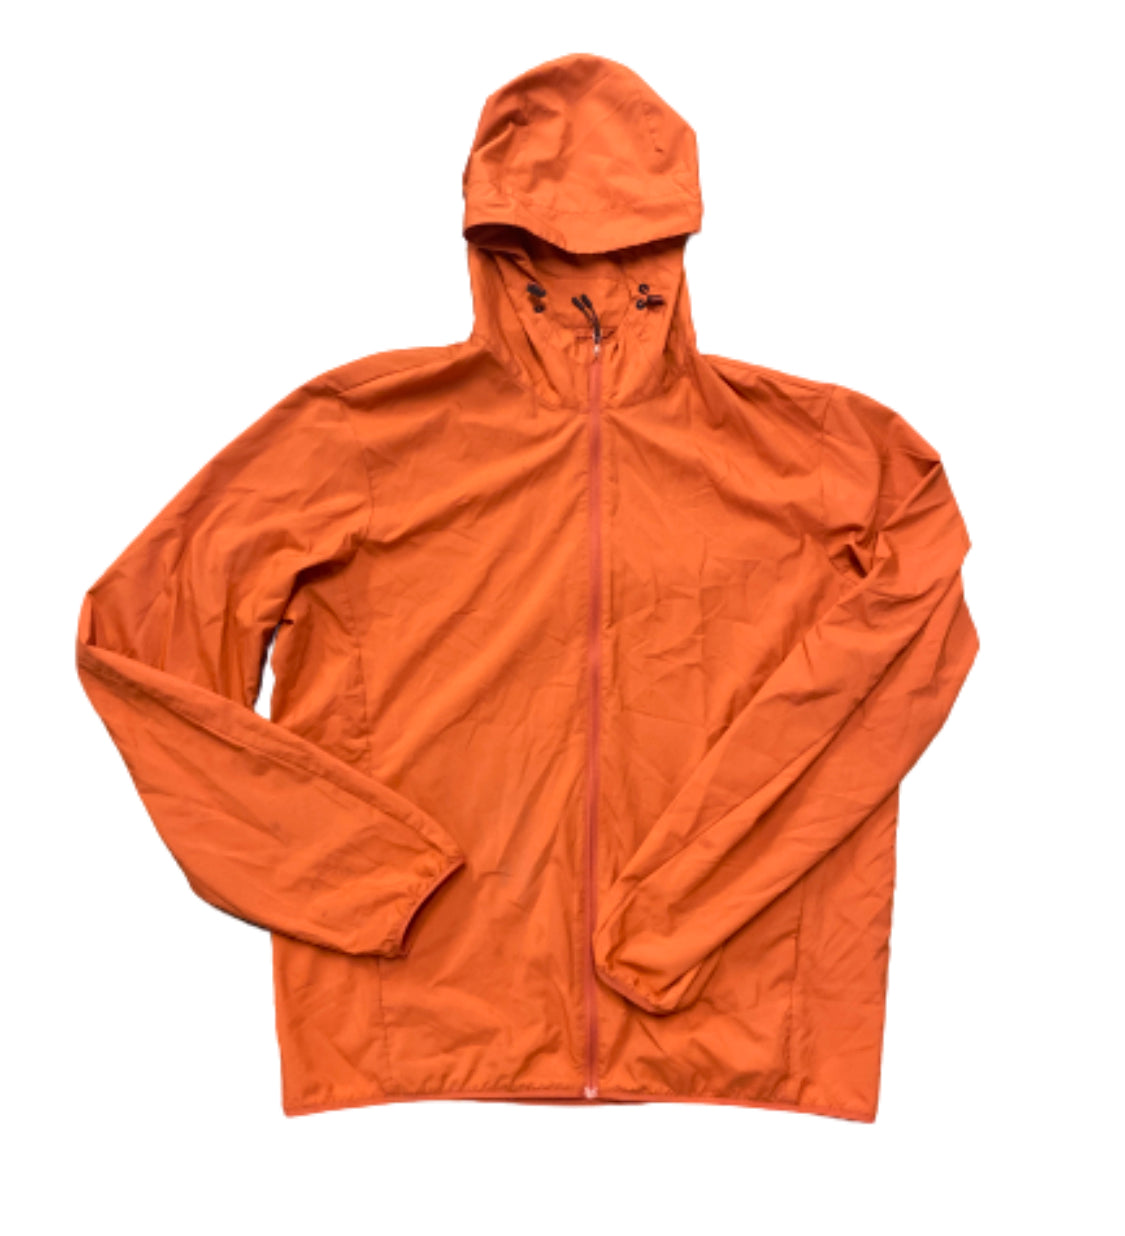 SILICON VALLEY: Dinesh's Orange Uniqlo Windbreaker